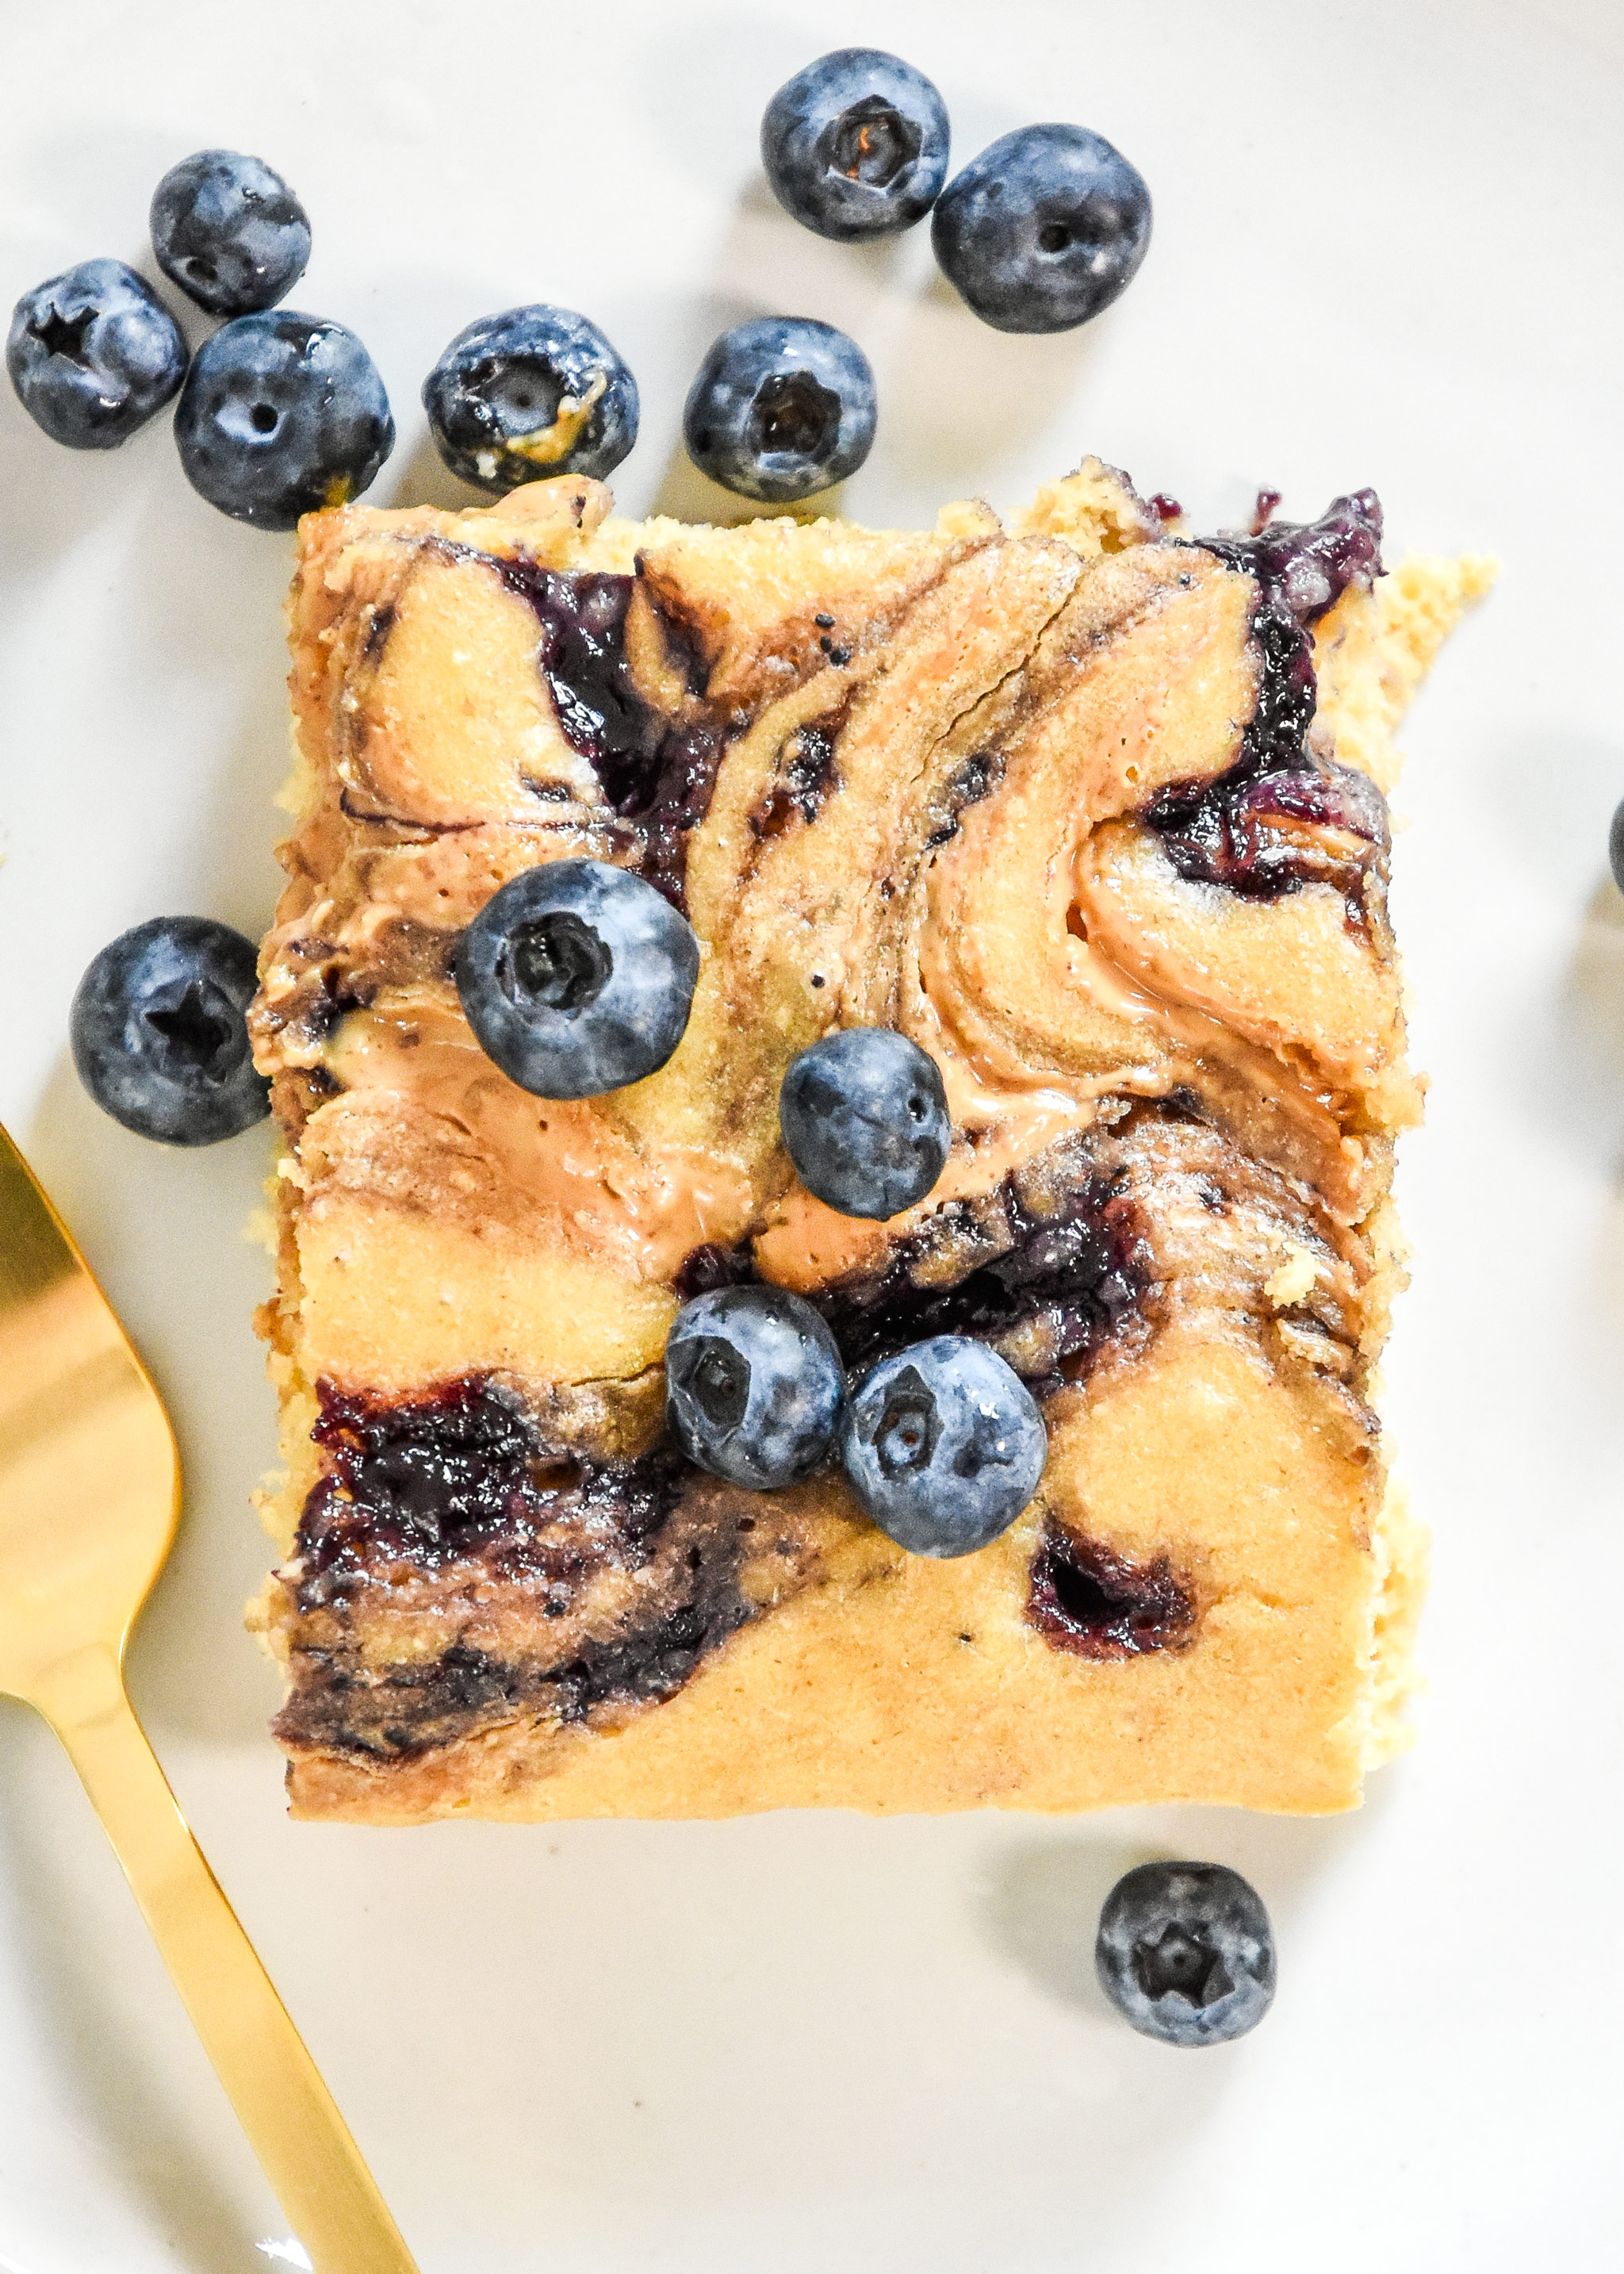 a perfect slice of peanut butter and jelly baked pancakes with blueberries on top